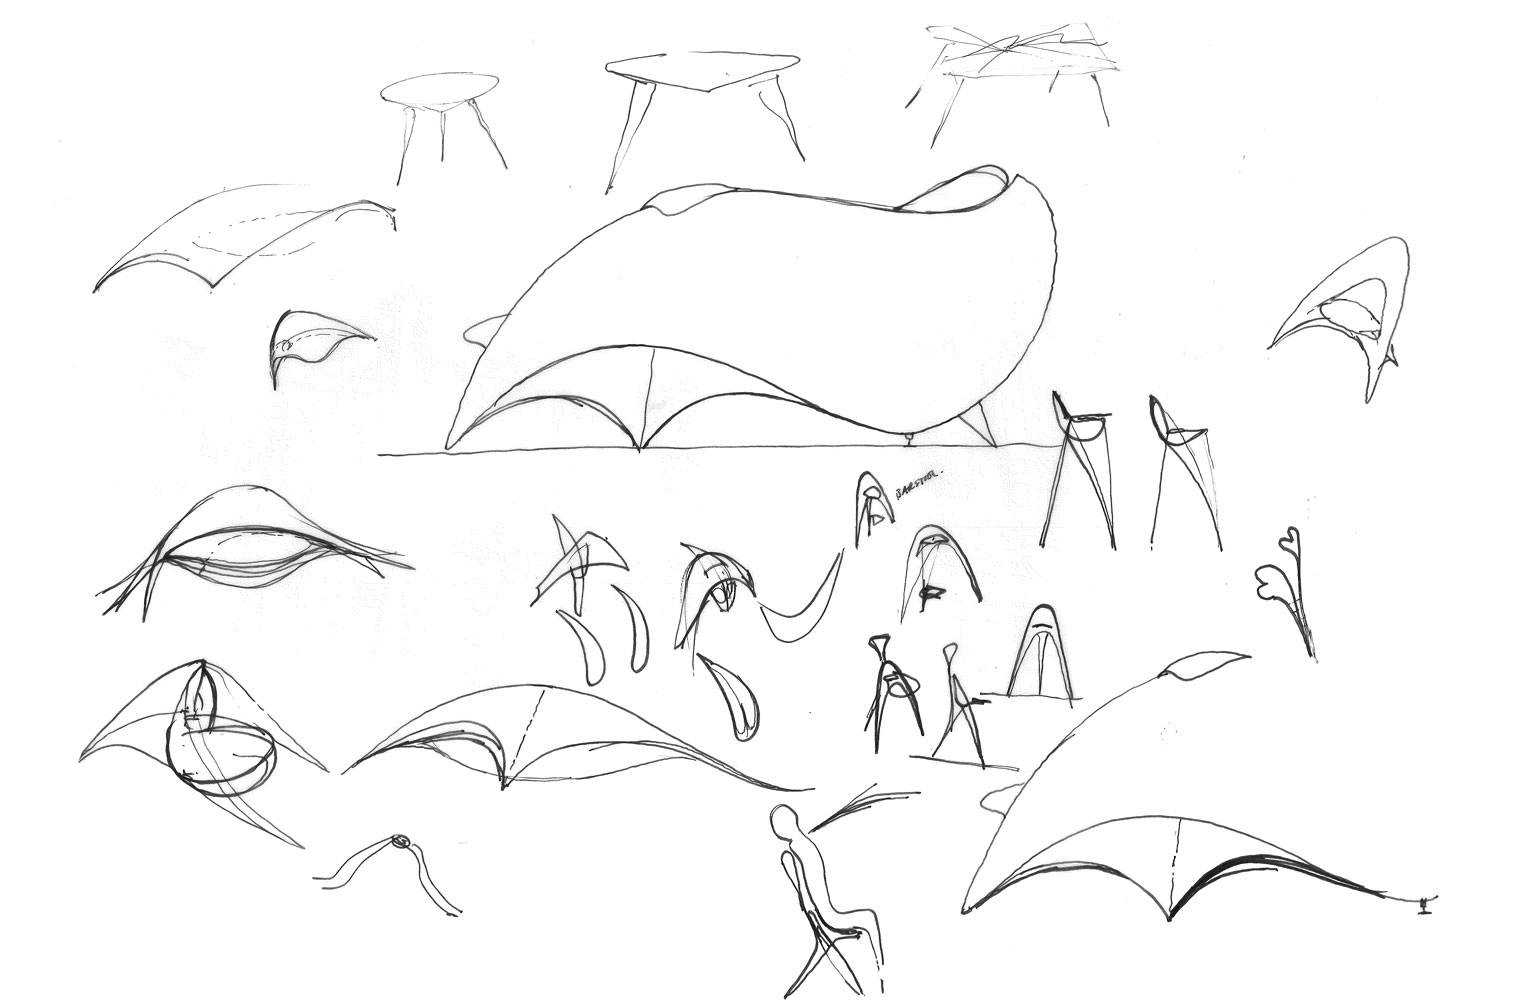 Whale Seat - Design Sketches